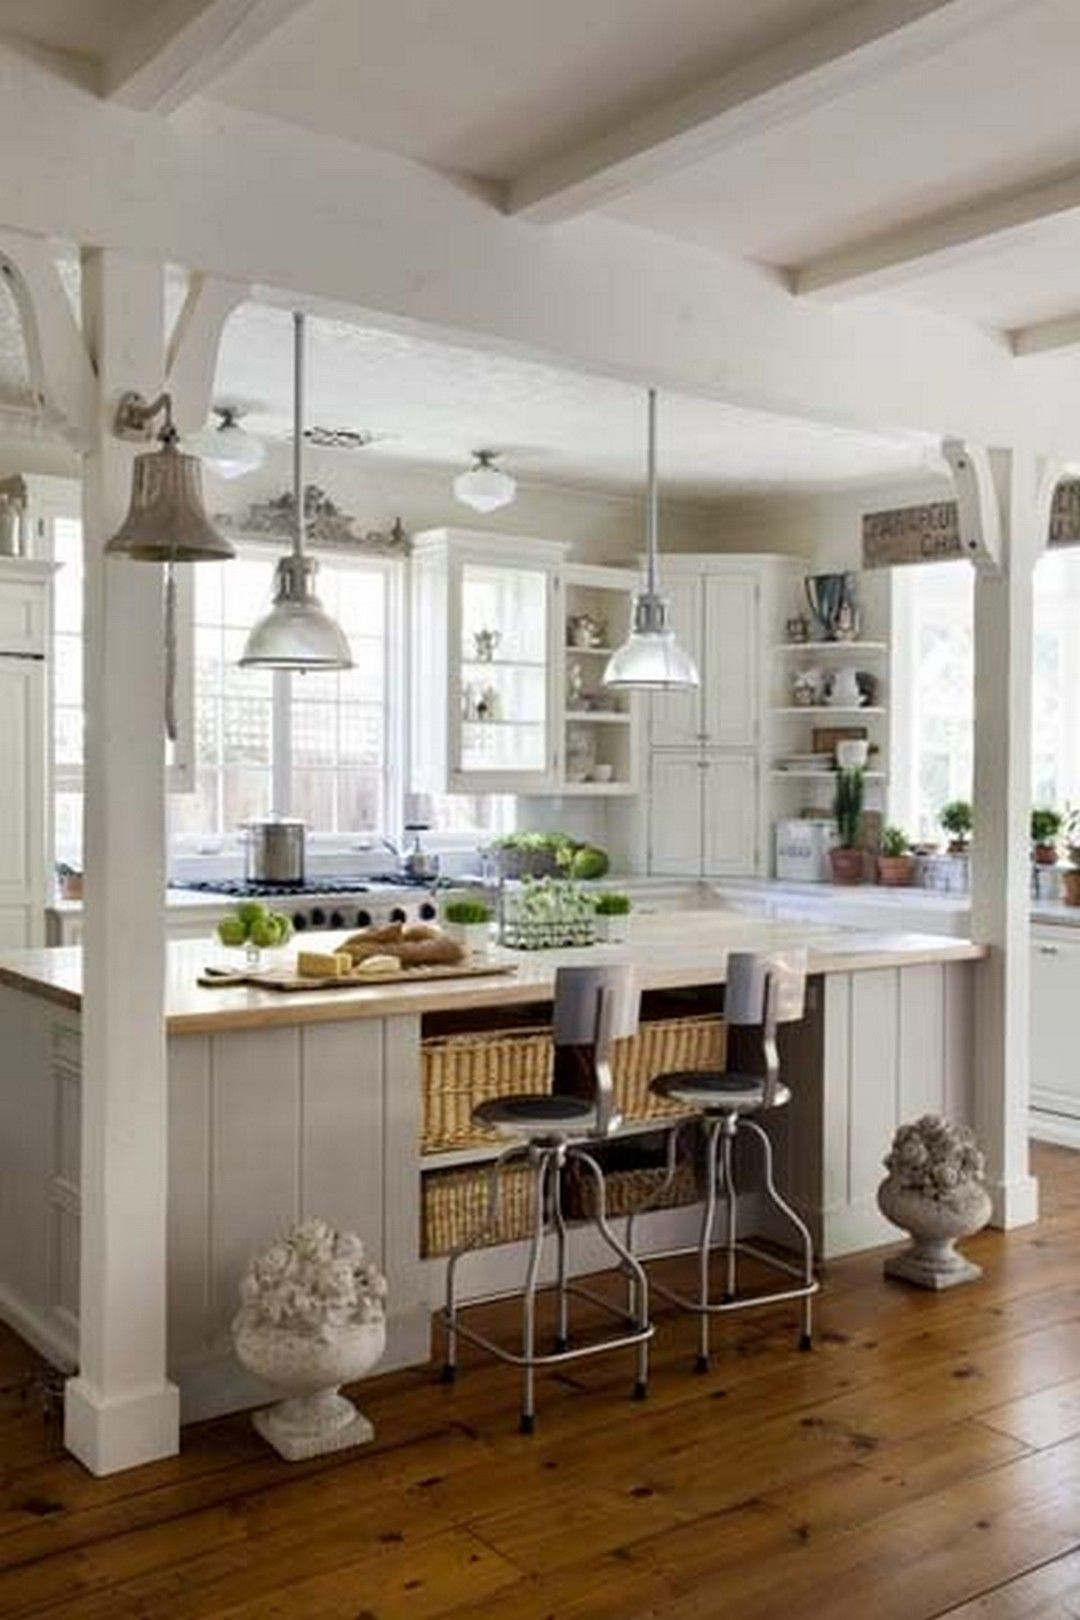 100+ Cozy and Cool Cottage-Style Interior Design | Pinterest | 90er ...